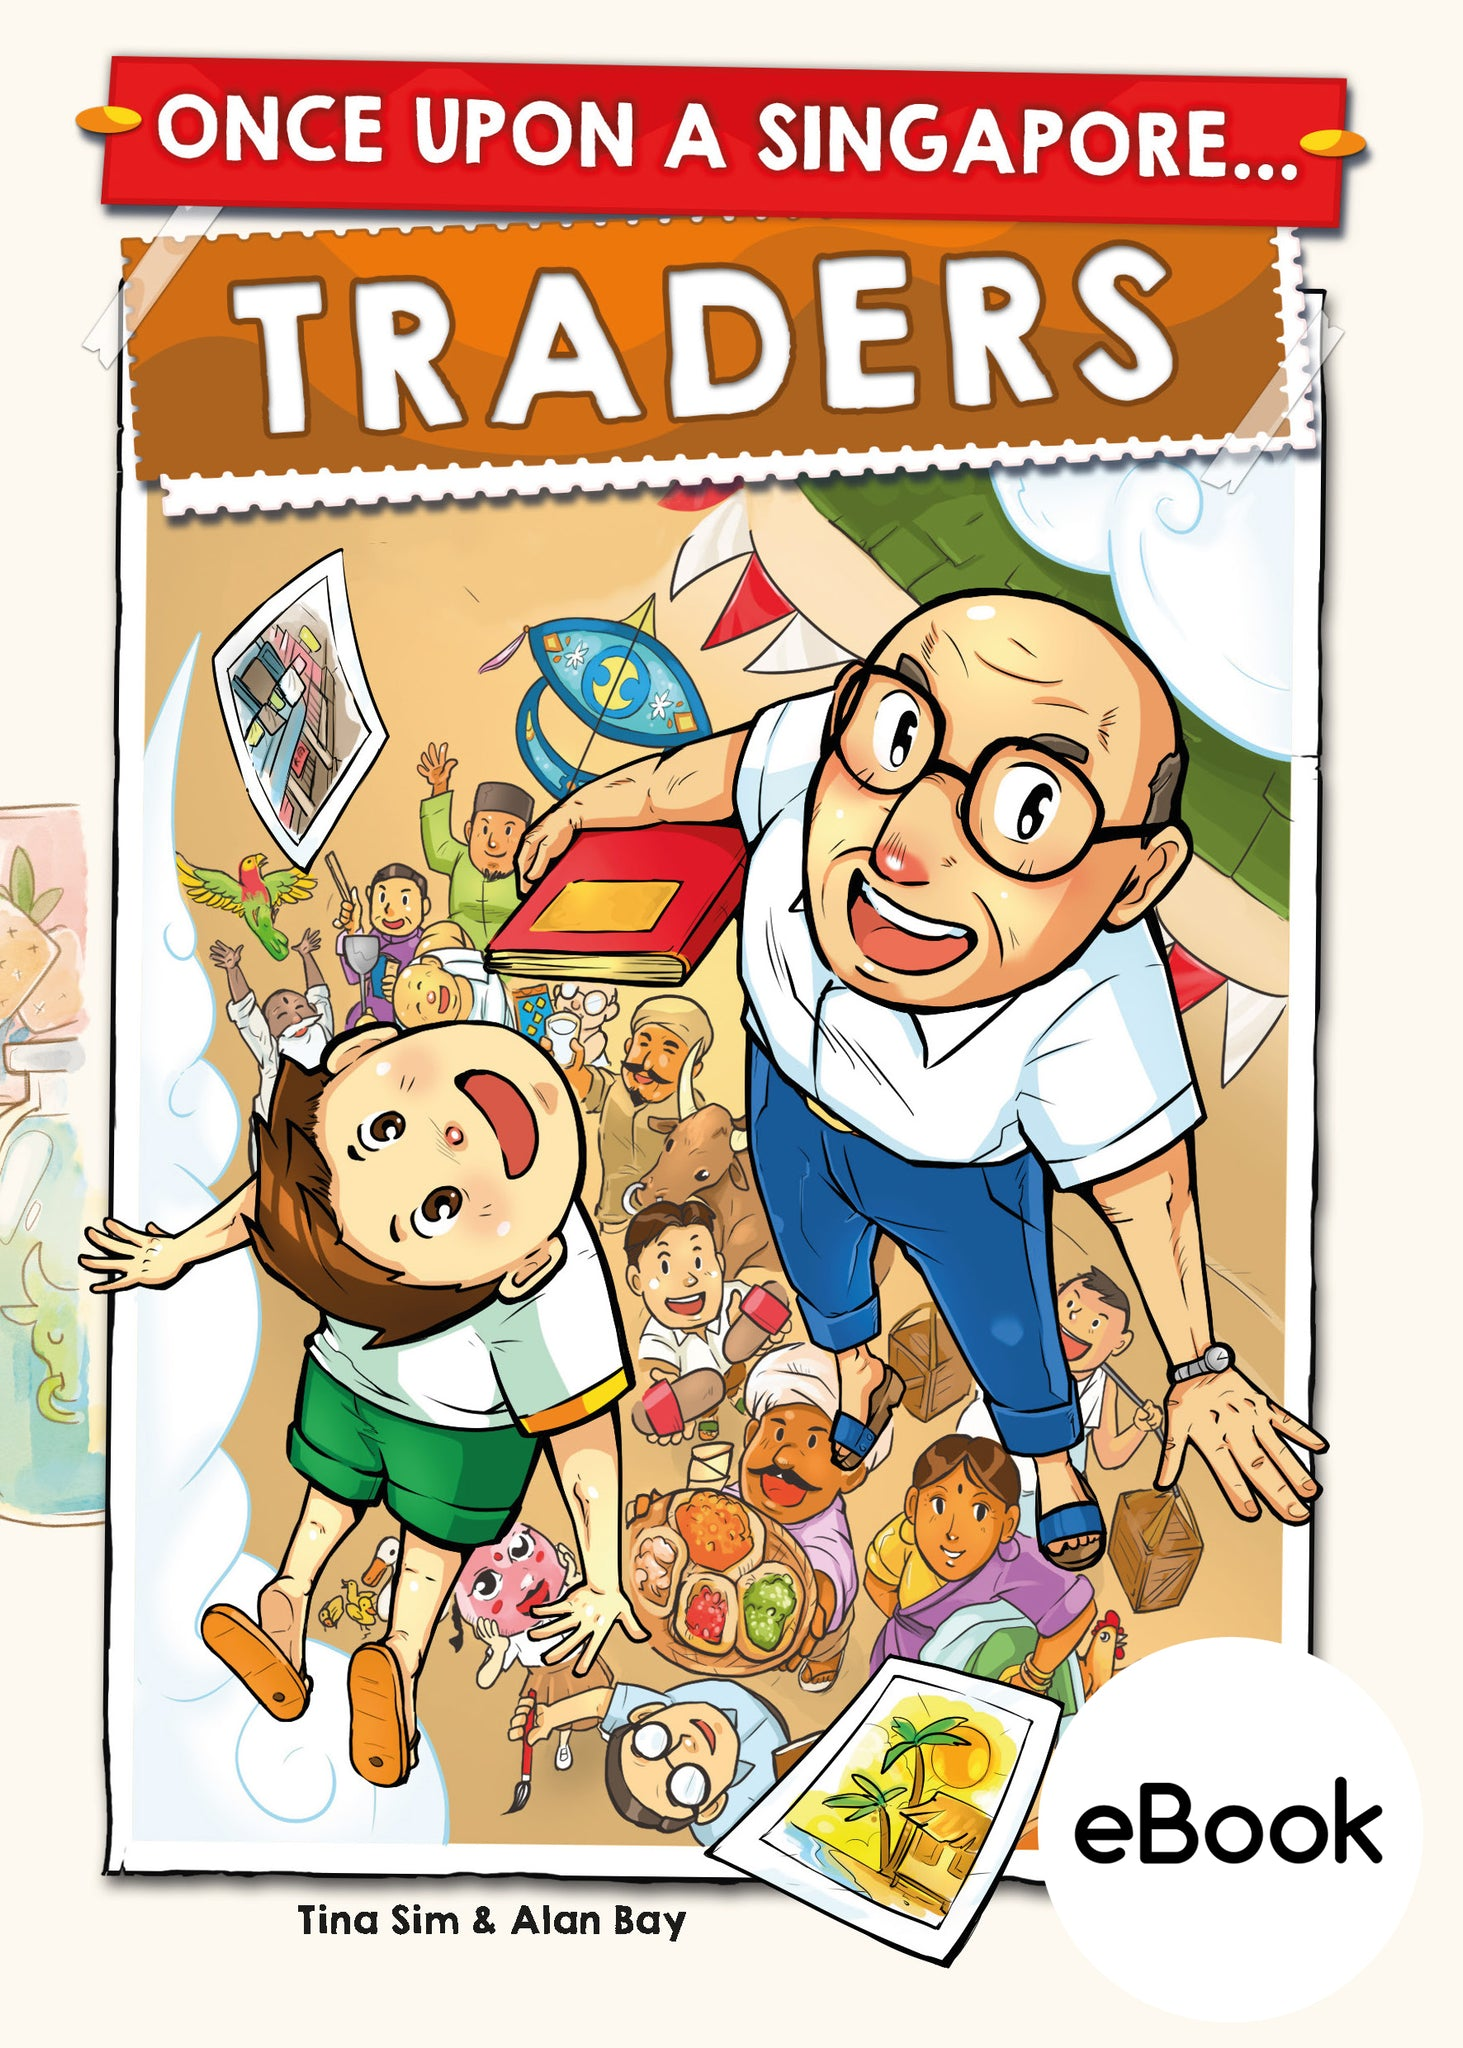 Once Upon a Singapore - Traders (eBook)